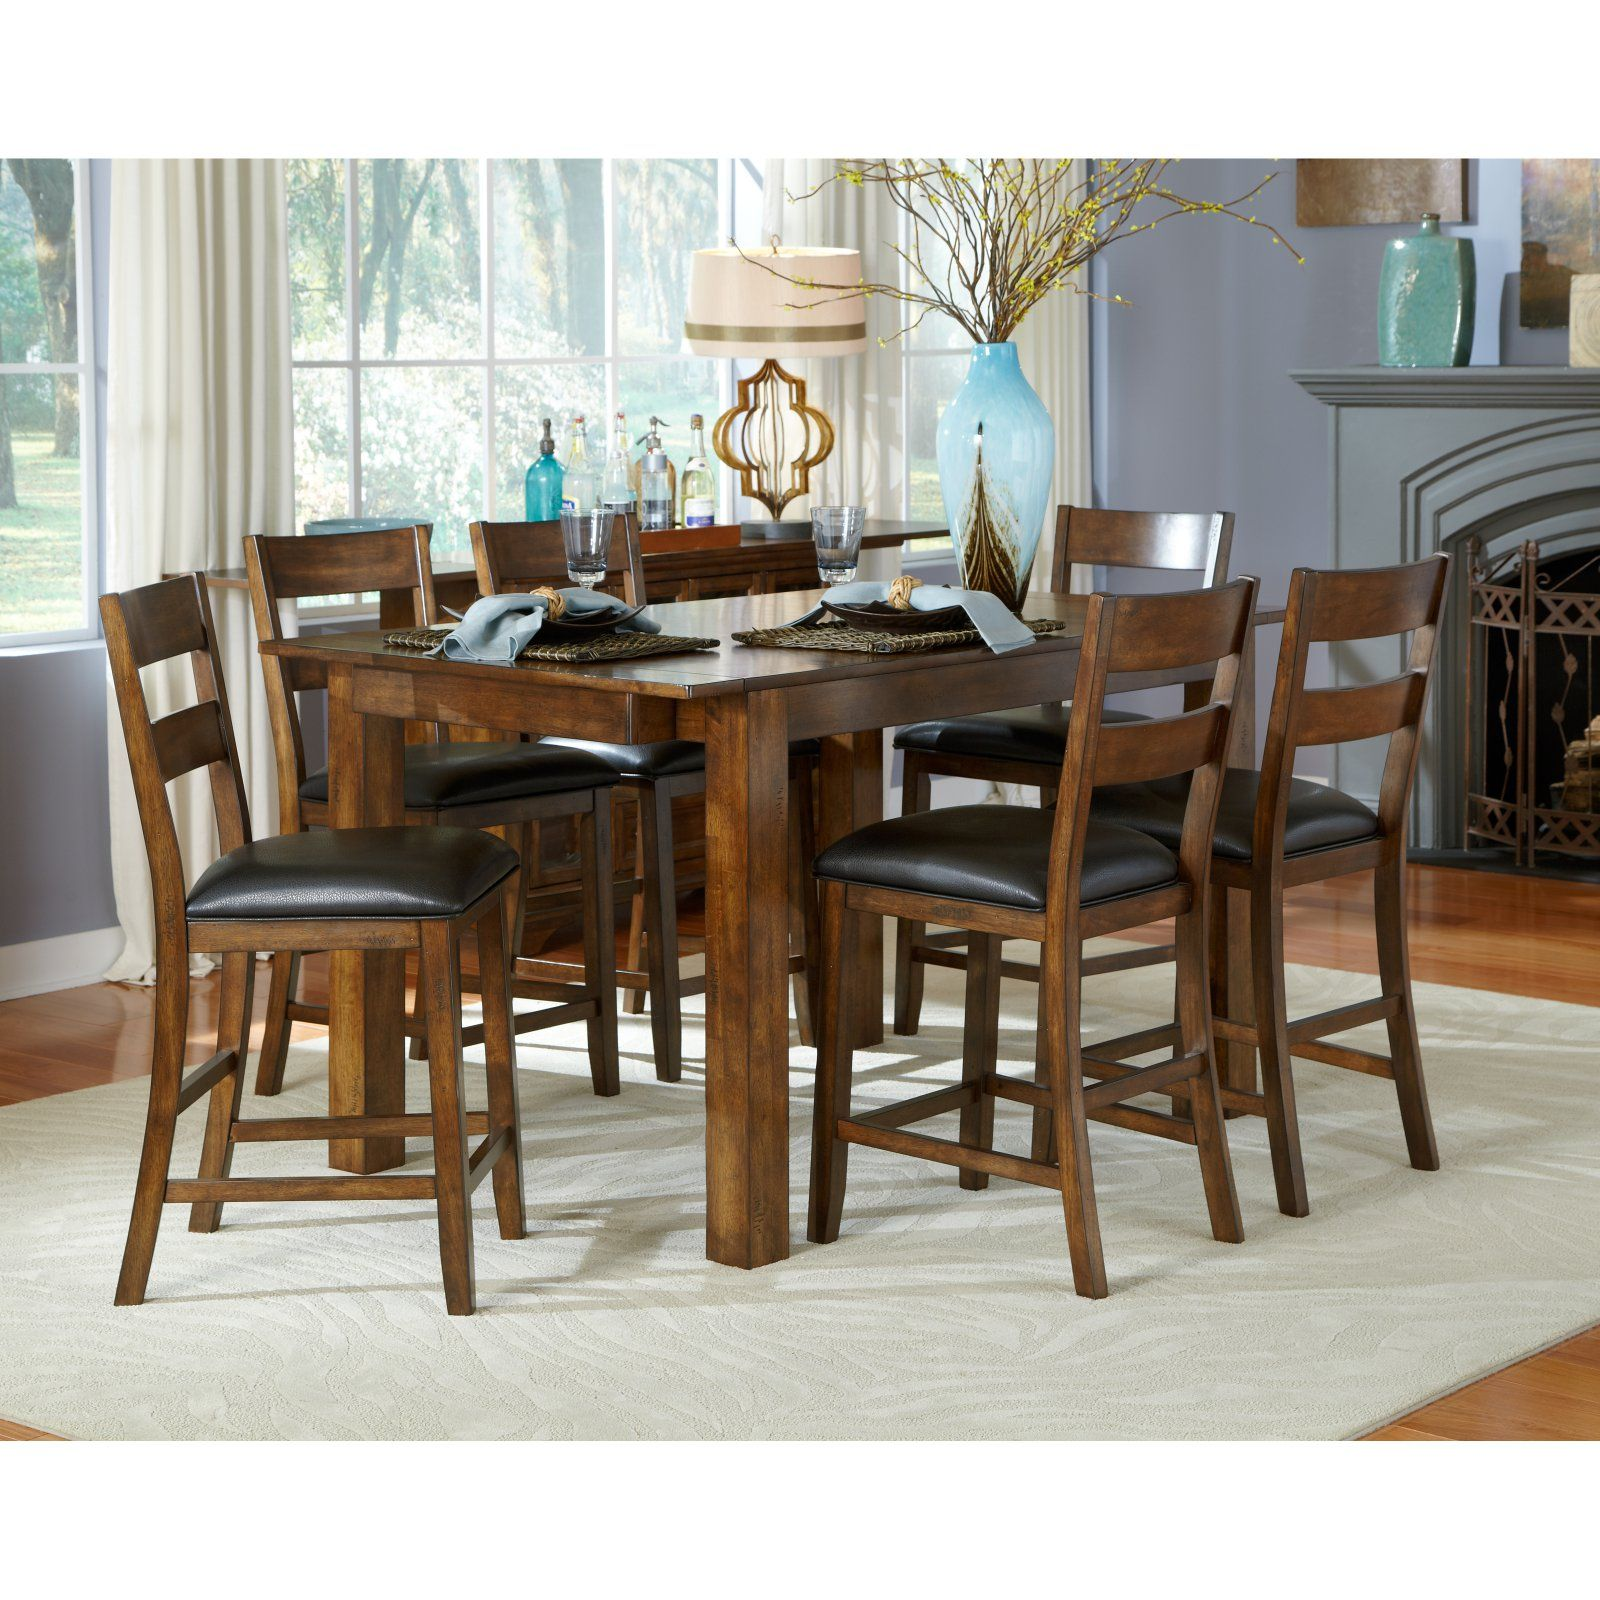 Aamerica mariposa gathering counter height dining table